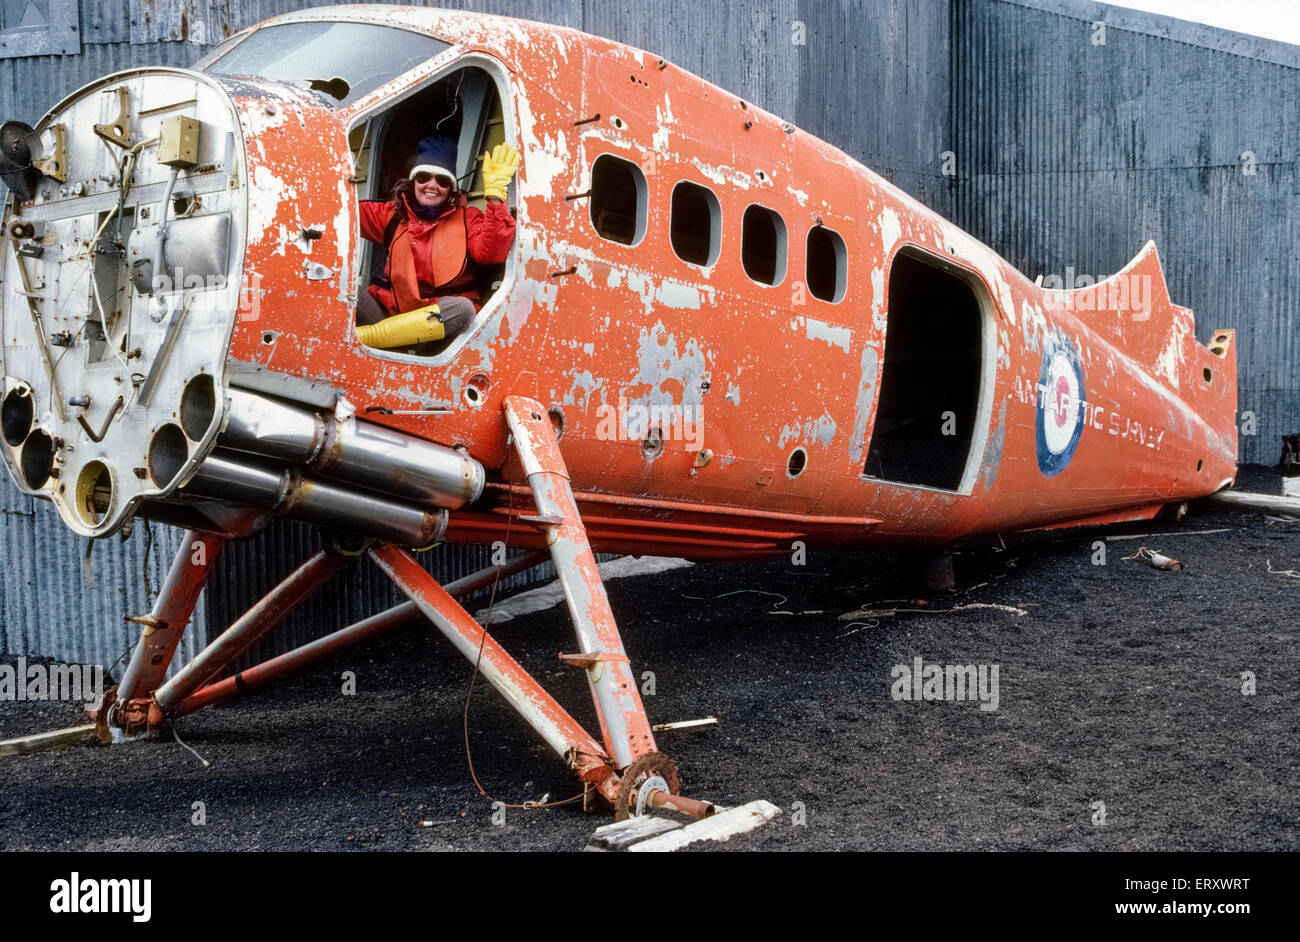 A visitor to Antarctica waves from a de Havilland Otter aircraft once used for the British Antarctic Survey that - Stock Image